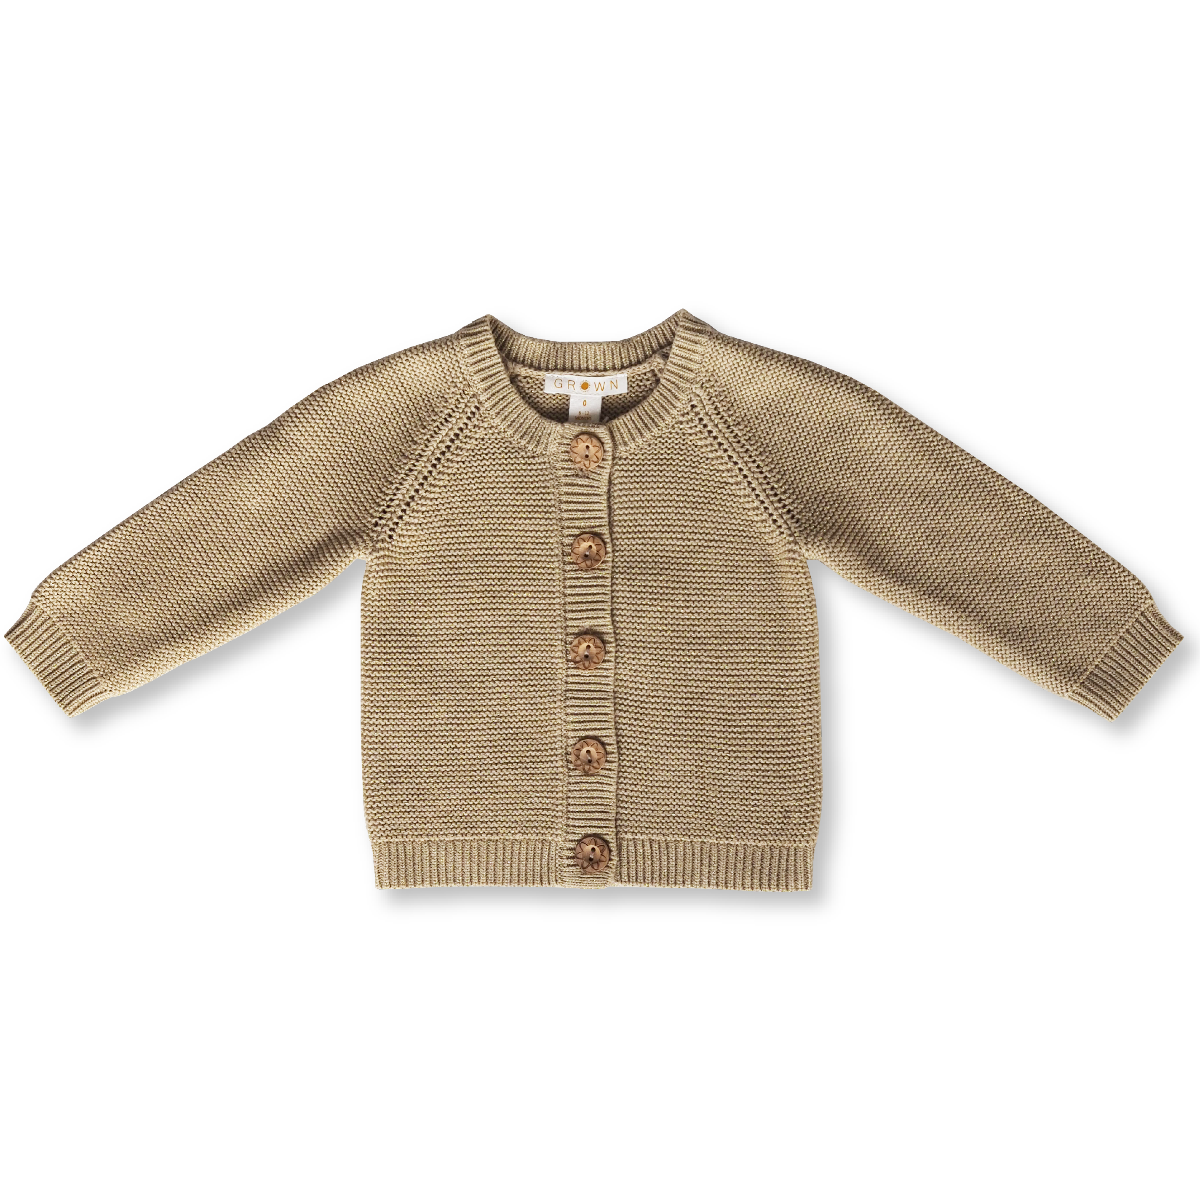 US stockist of Grown Clothing's organic cotton cardigan with gold lurex.  Beautiful wooden buttons featuring flower details.